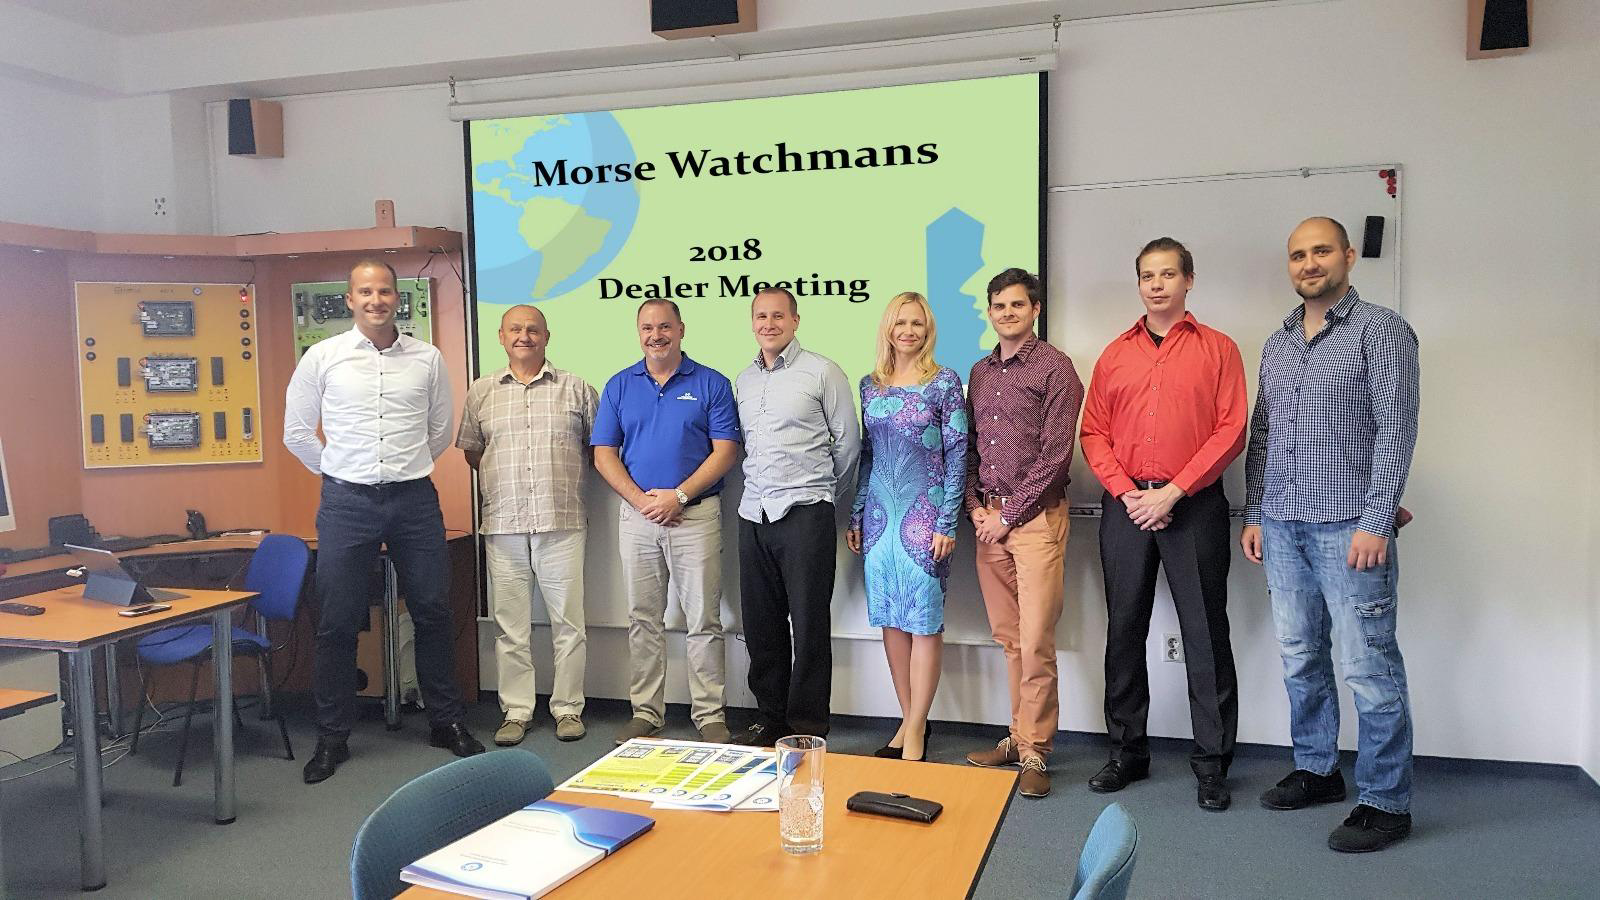 Morse Watchmans Dealer Meeting 2018